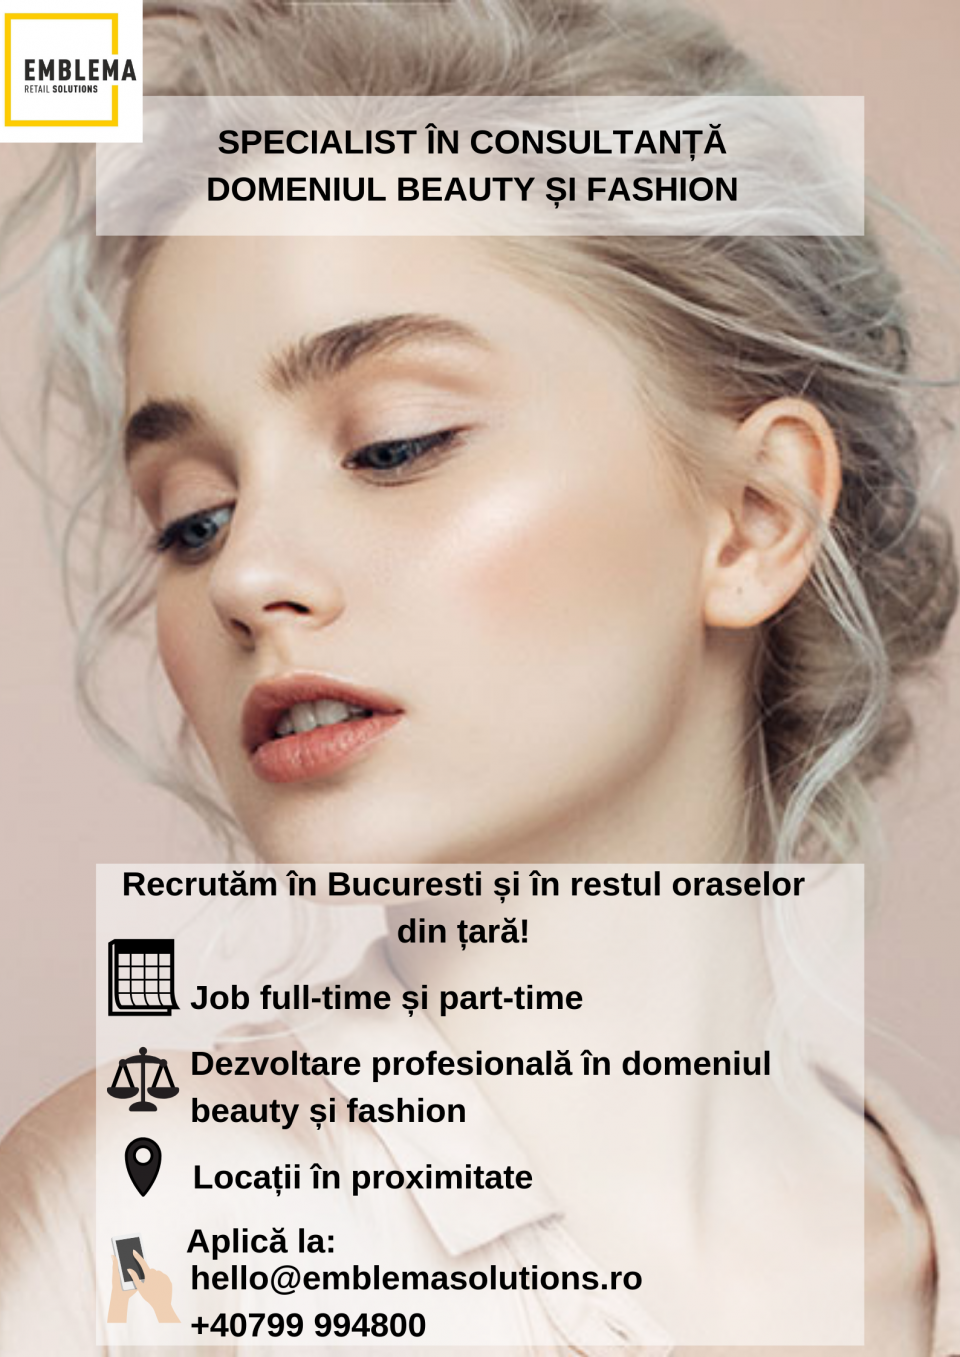 Titlu job: Specialist in consultanta, domeniul Fashion si Beauty